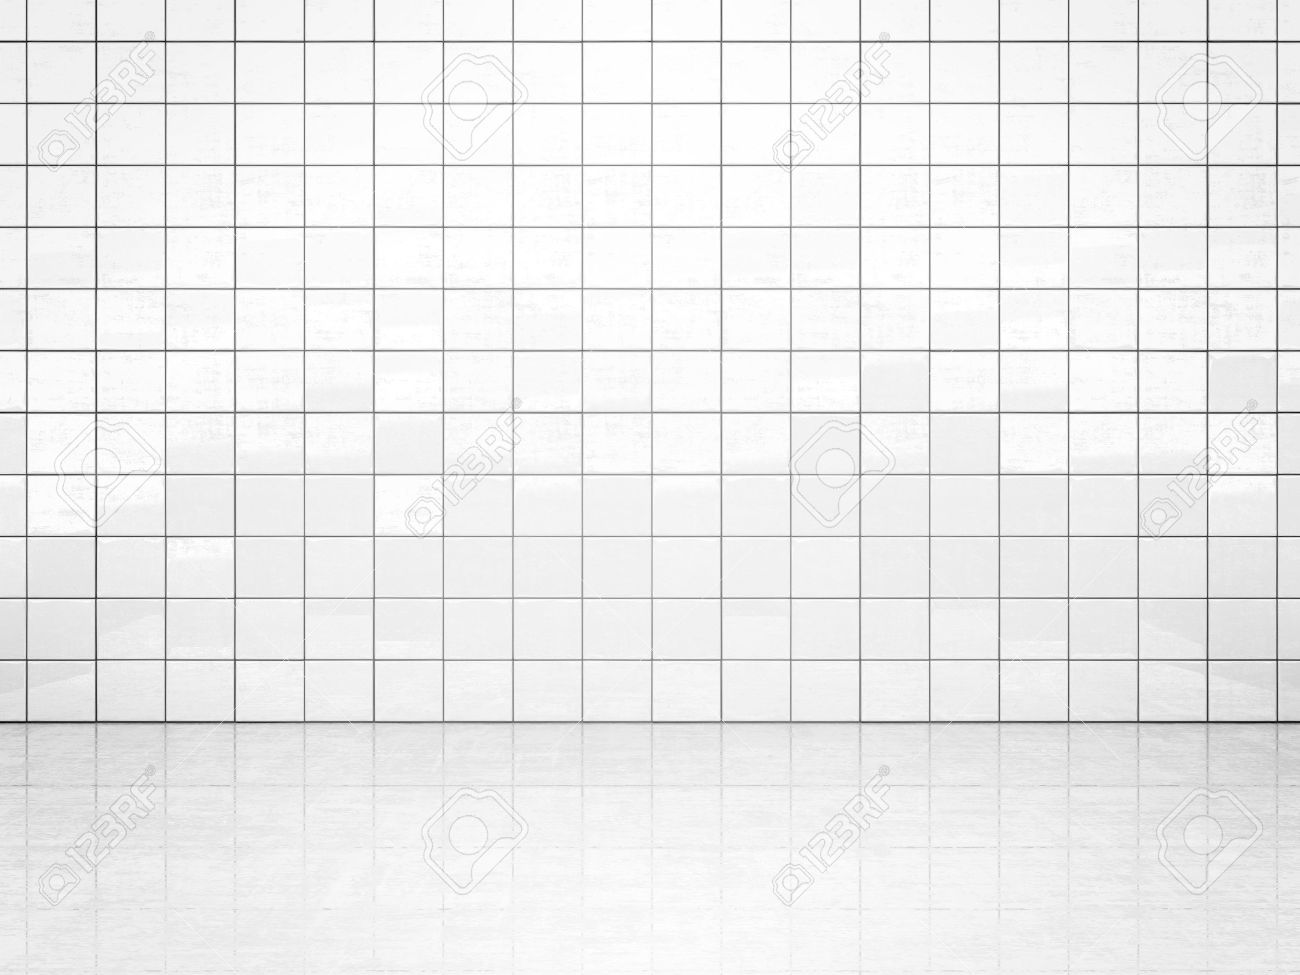 White ceramic tile wall and concrete floor bath or toilet room white ceramic tile wall and concrete floor bath or toilet room background 3d illustration dailygadgetfo Gallery